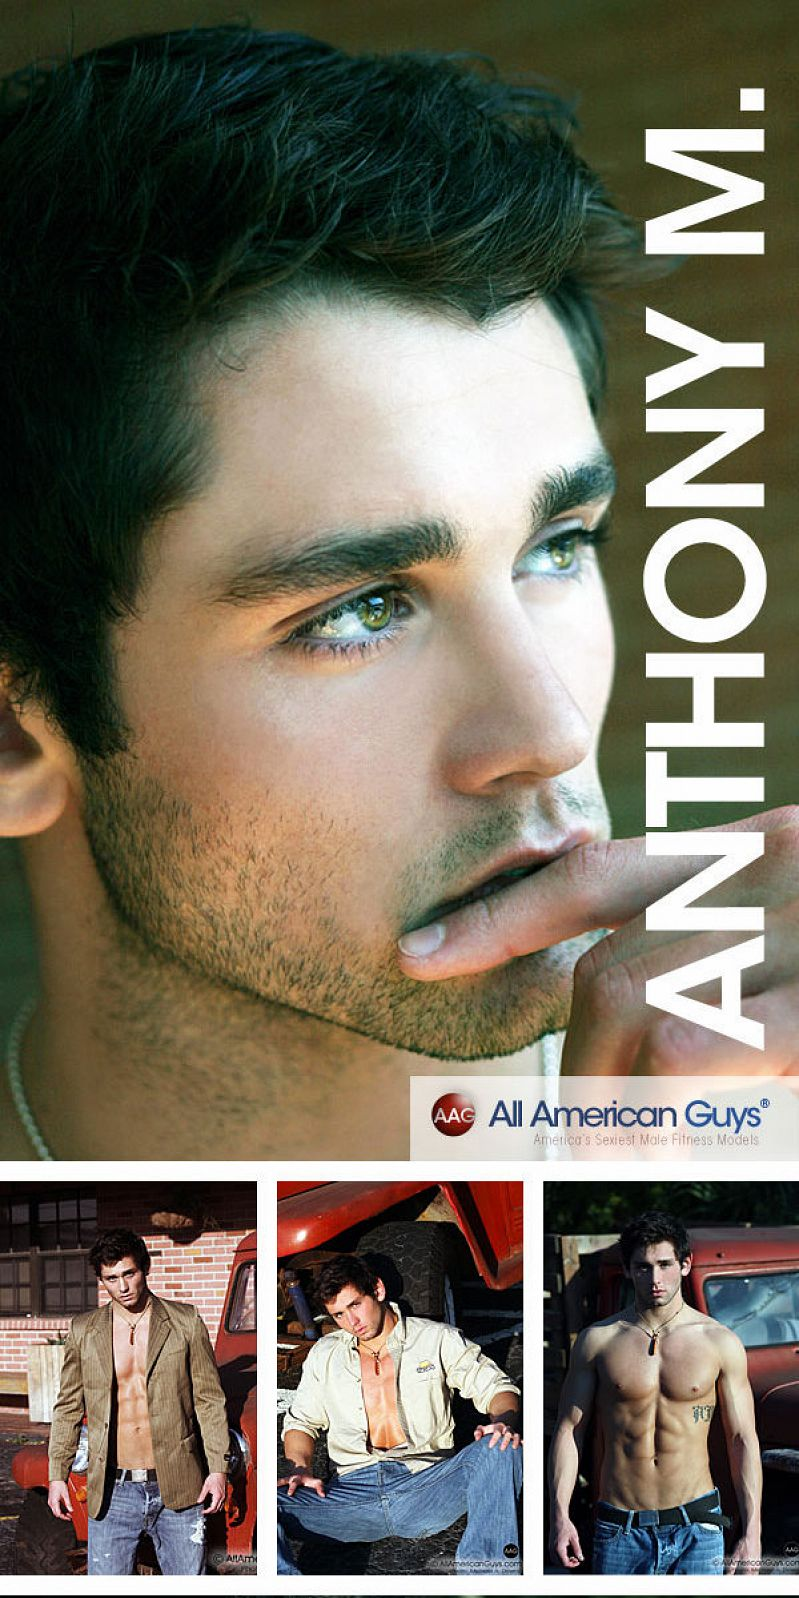 AllAmericanGuys – Anthony M.